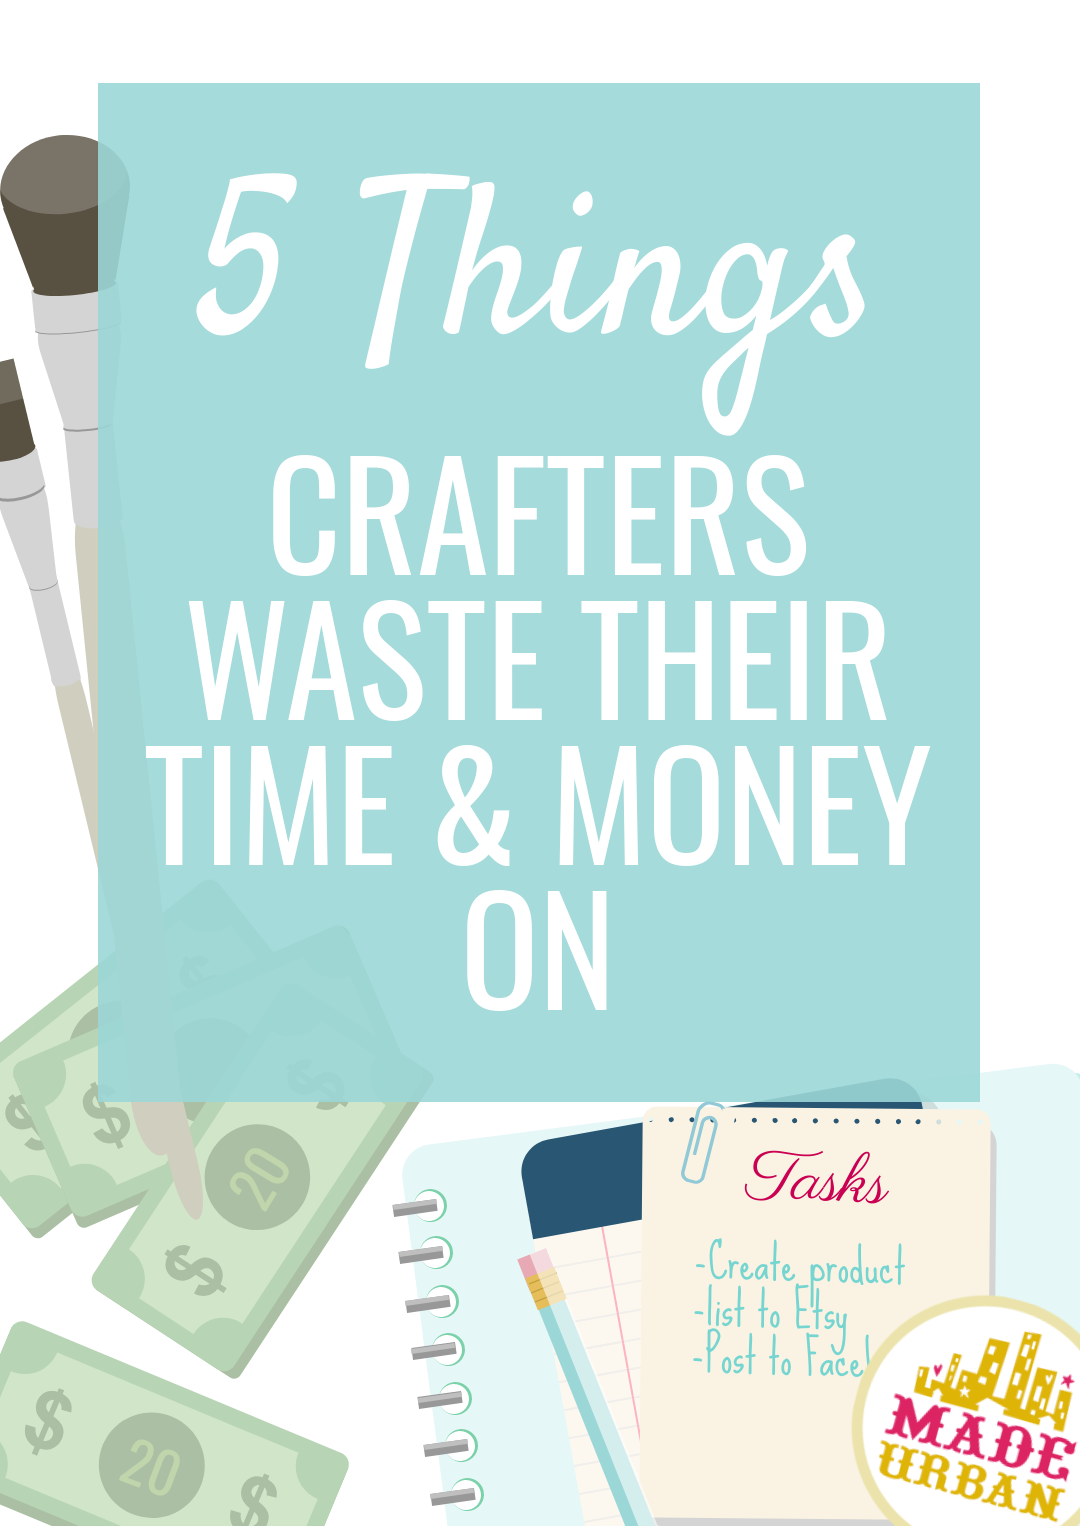 Handmade businesses are often a side project, so owners must be sure they're spending their time wisely and not wasting it on low-value tasks. Find out which tasks I wasted time and money on in my handmade business and ones you should give less time to or avoid altogether.